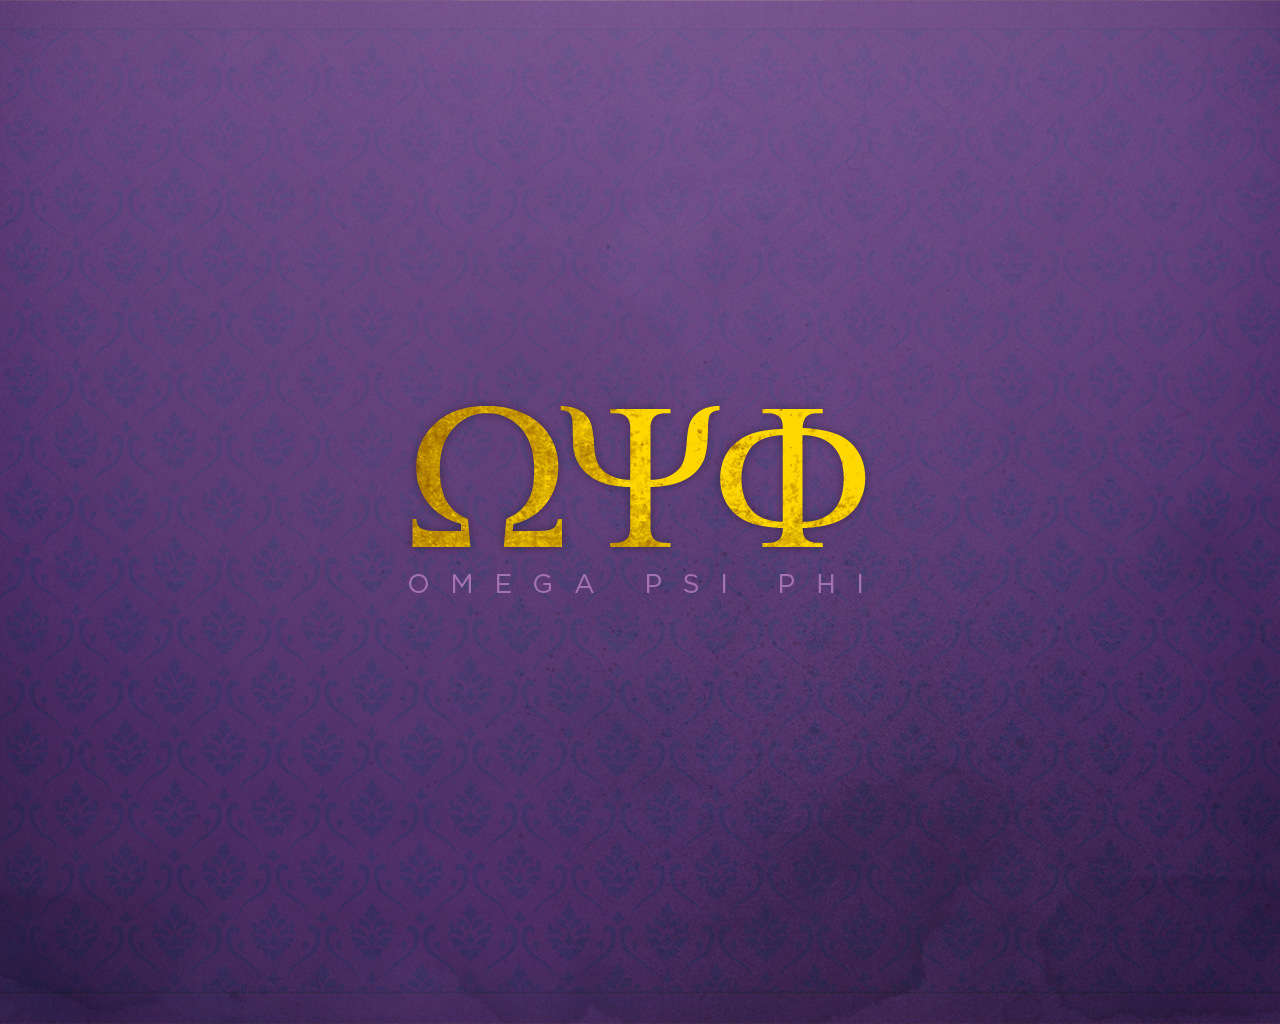 dating a omega psi phi The omega psi phi fraternity, inc ψ chapter founded in 1921 on the campus of morehouse college (atlanta, ga).